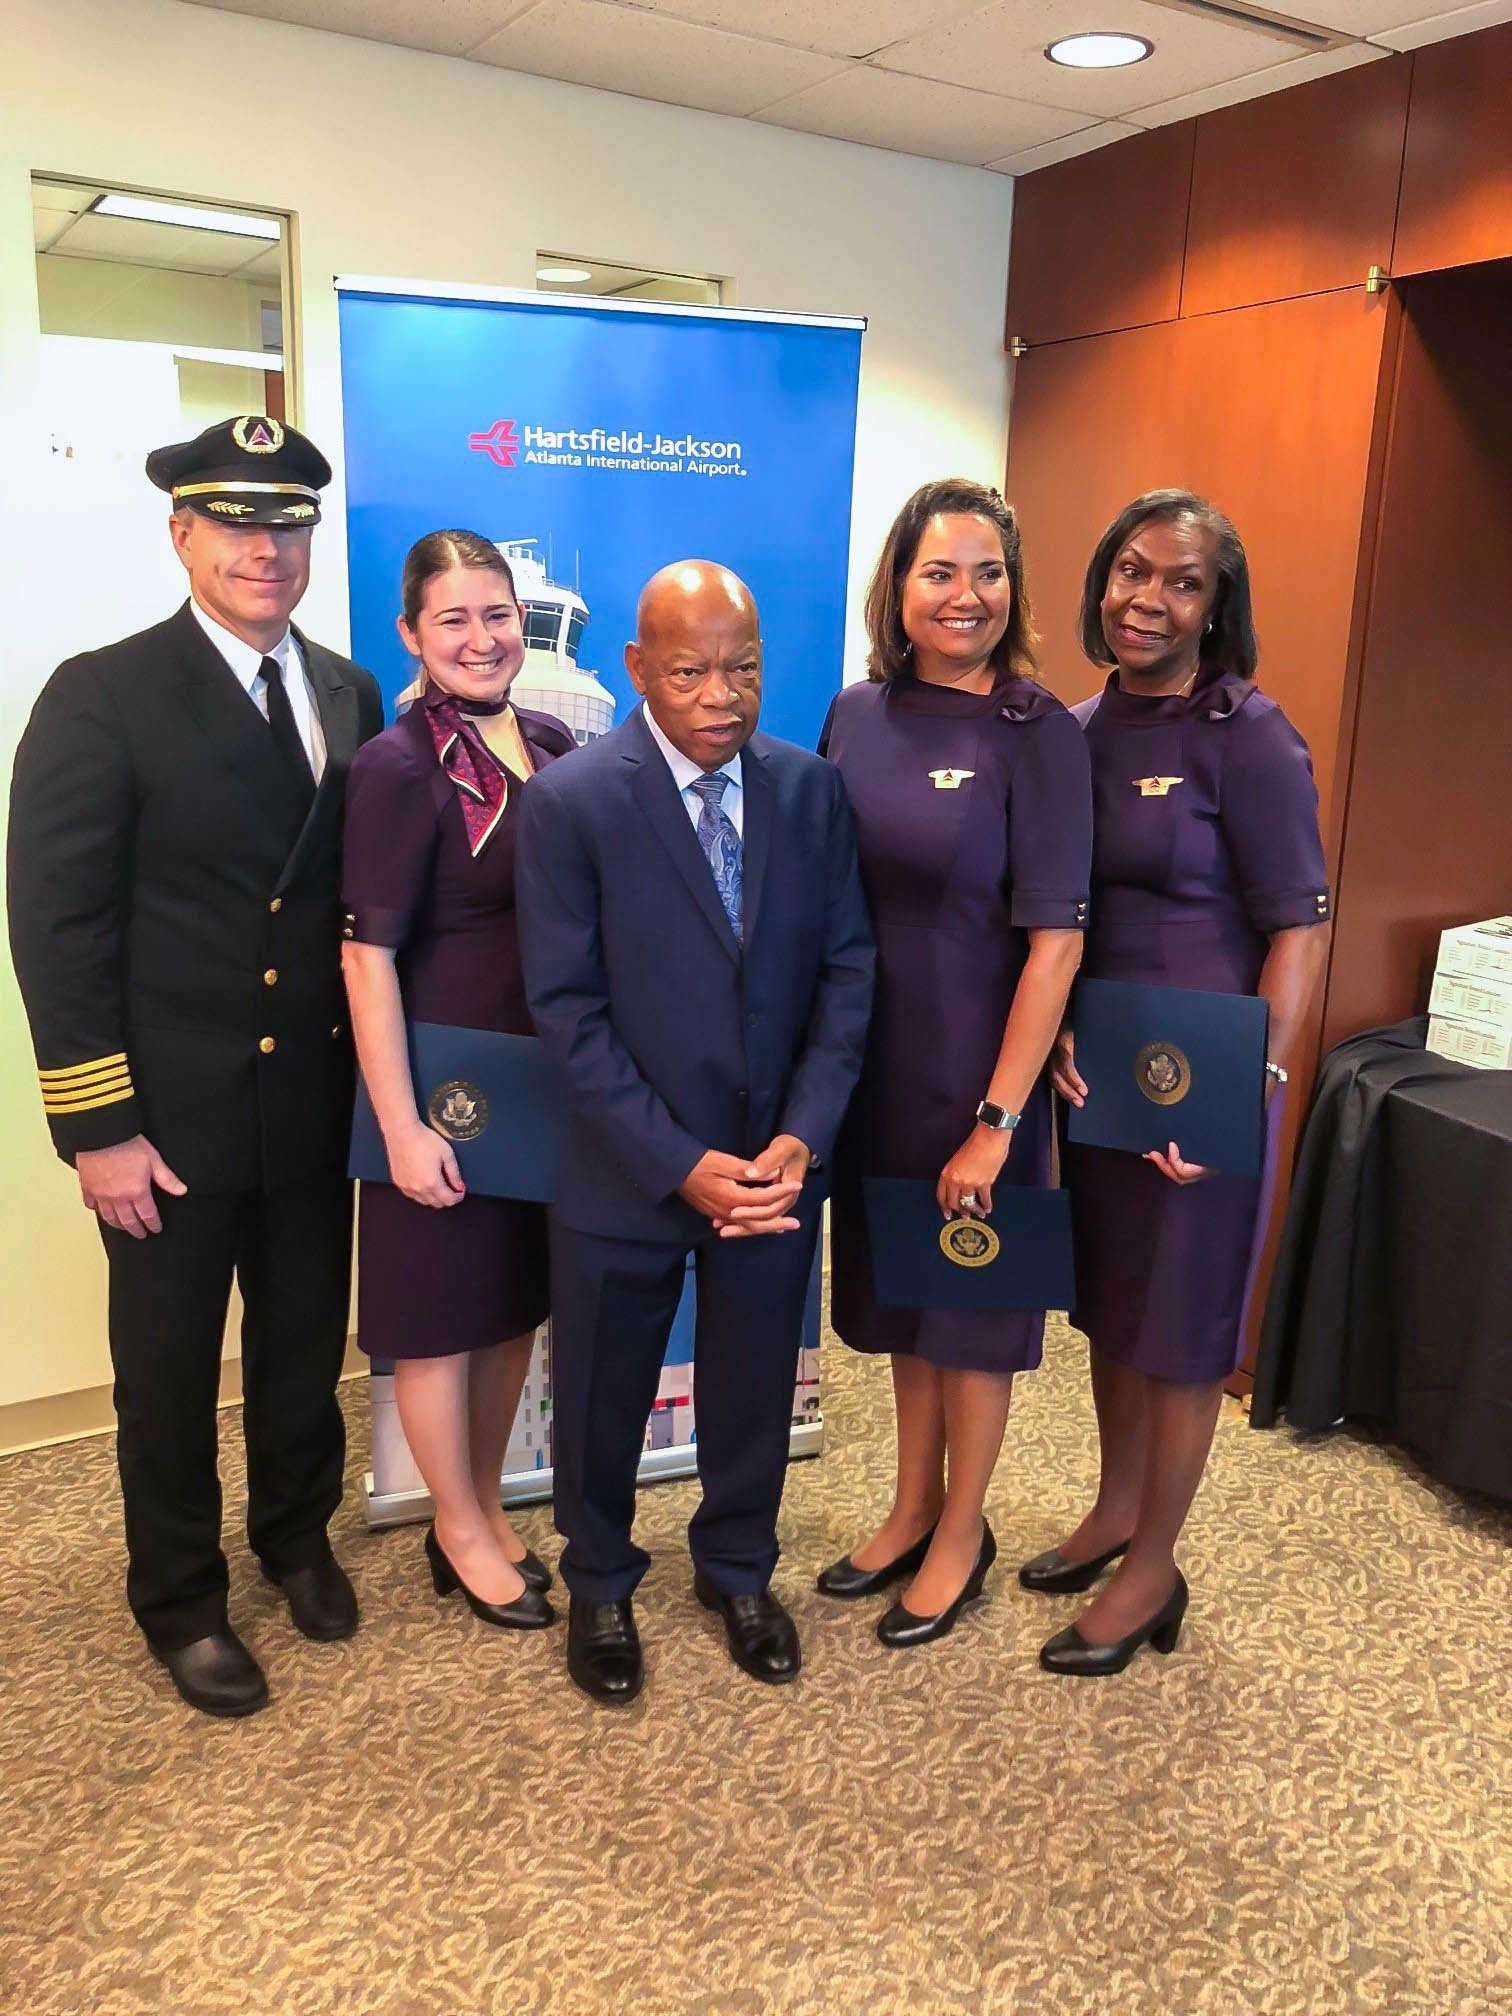 Delta Ceo Honors Rep John Lewis With A Pledge To Continue His Legacy Delta News Hub